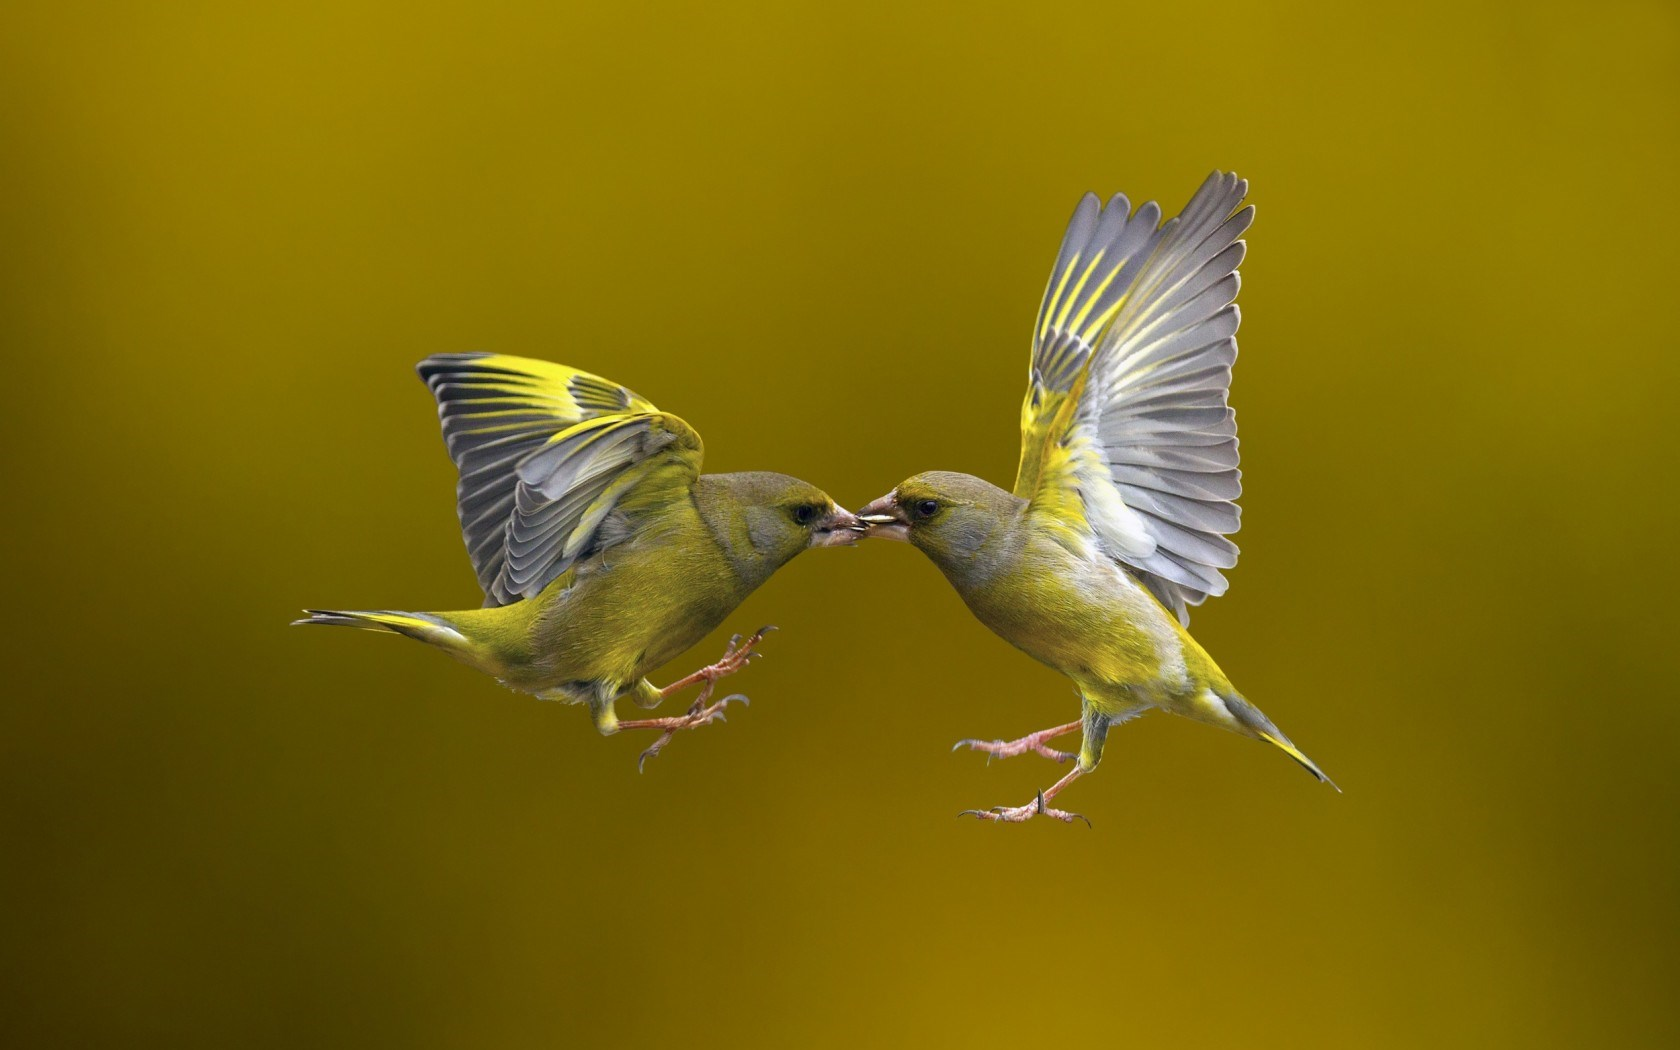 ... birds, yellow background, photo nature, flying, animals, hd